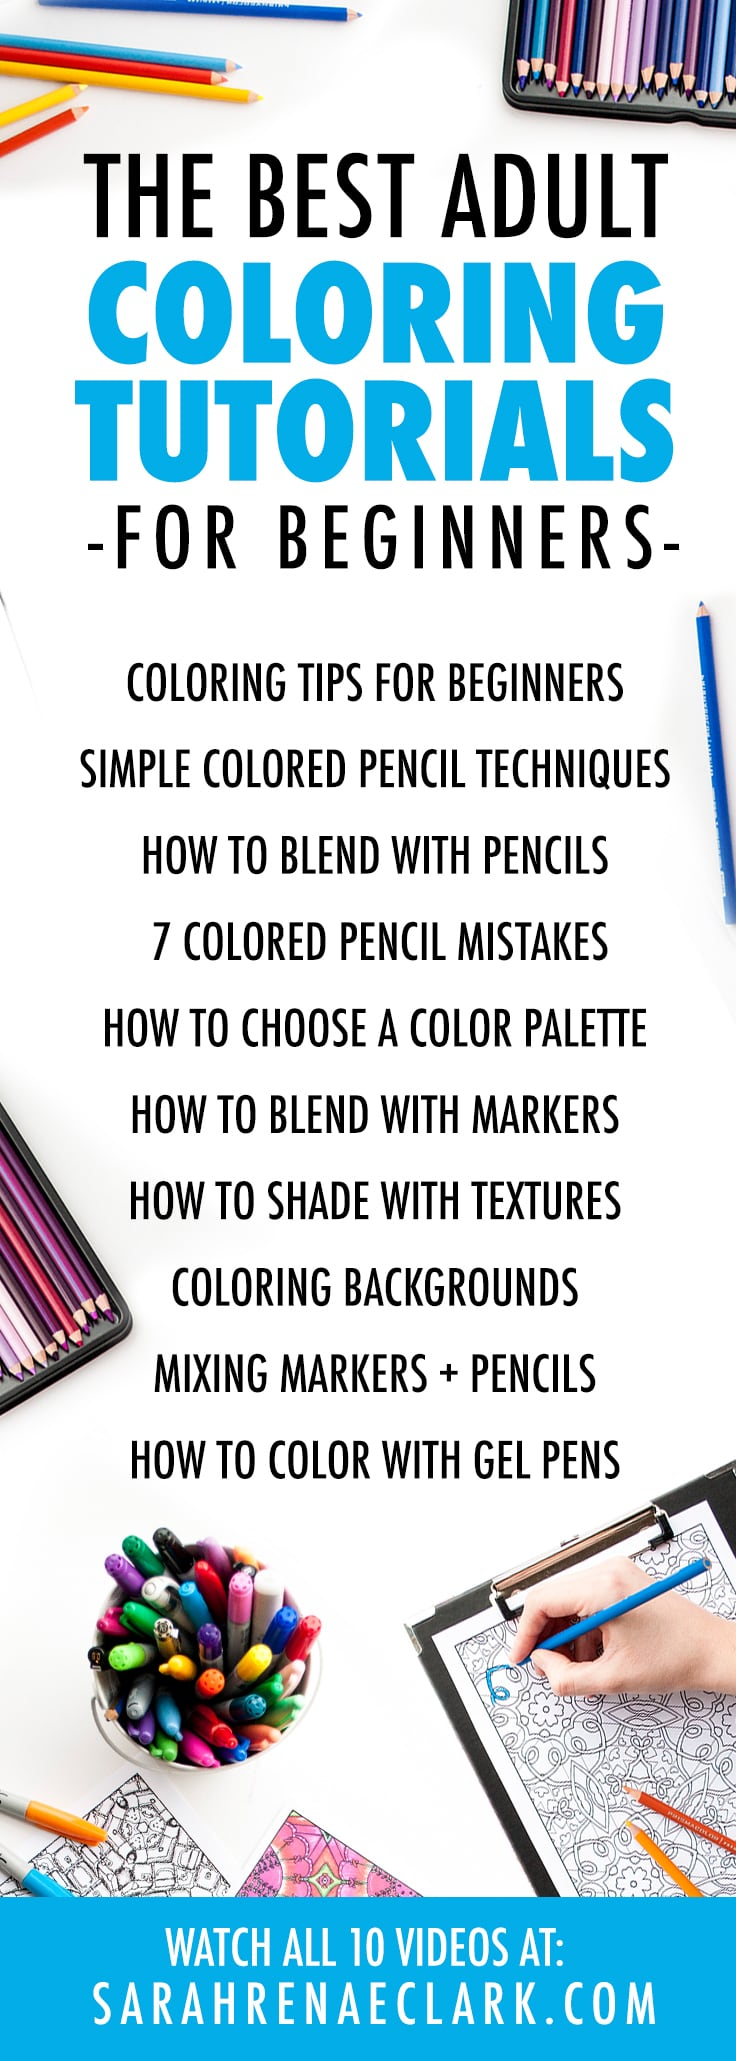 The 10 Best Adult Coloring Tutorials for Beginners - Sarah Renae Clark